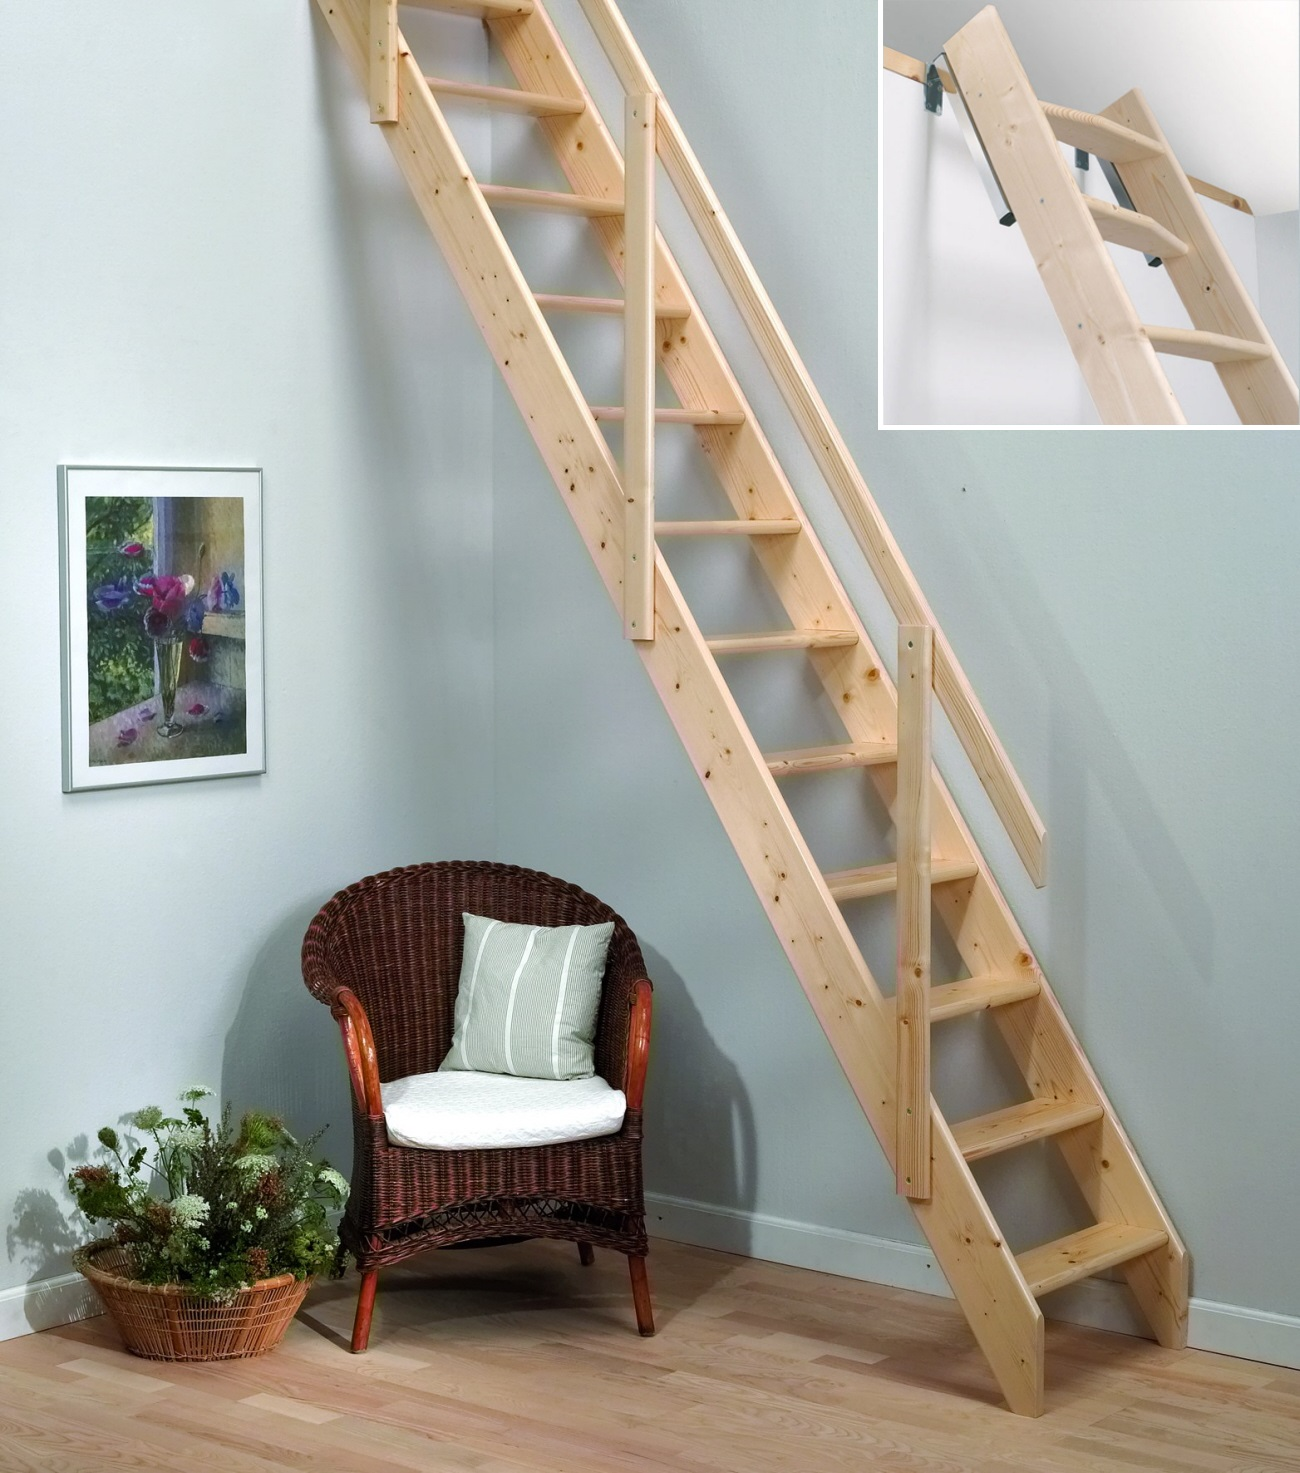 Merveilleux Details About Madrid Wooden Space Saver Staircase Kit (Loft Stair / Ladder)